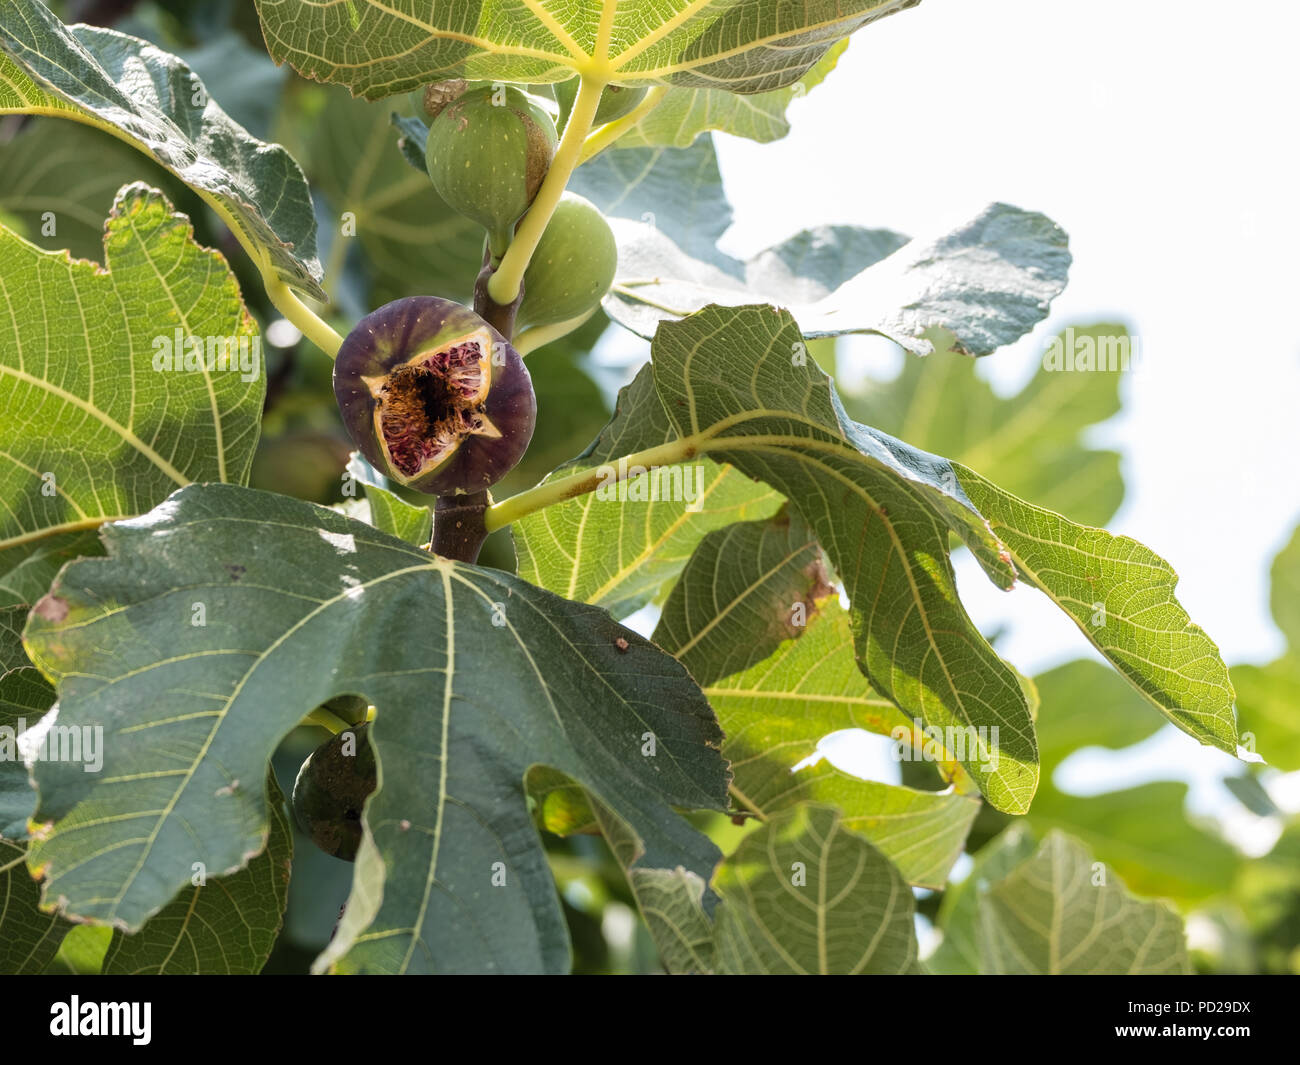 Freshly Ripened Fig, ( Ficus carica ) fruit better known as the common fig. Native to the middle East, Saronida, East Attica, Greece, Europe. Stock Photo